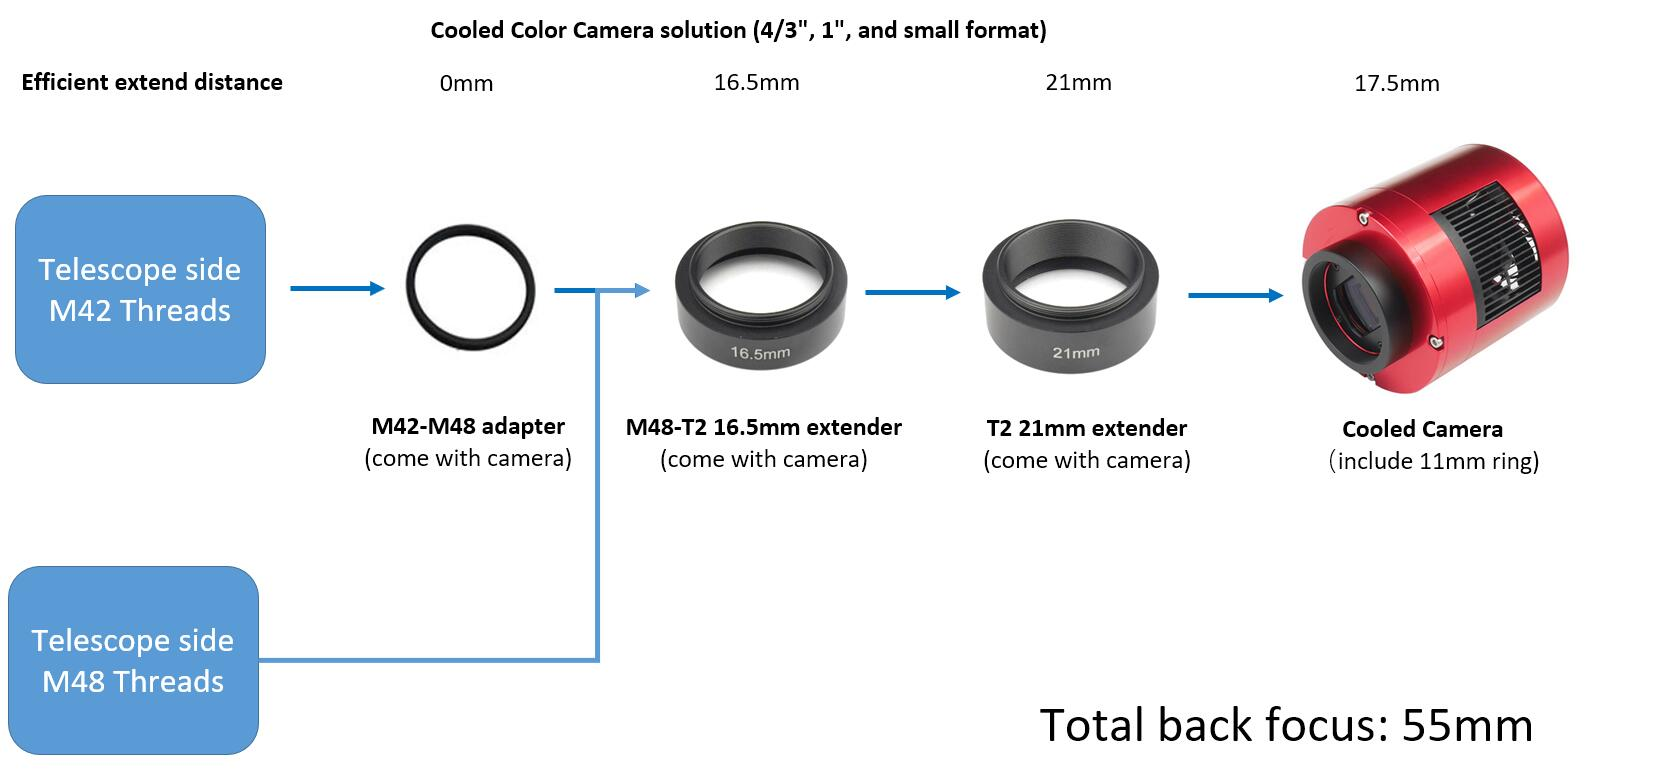 Cooled Color Camera solution